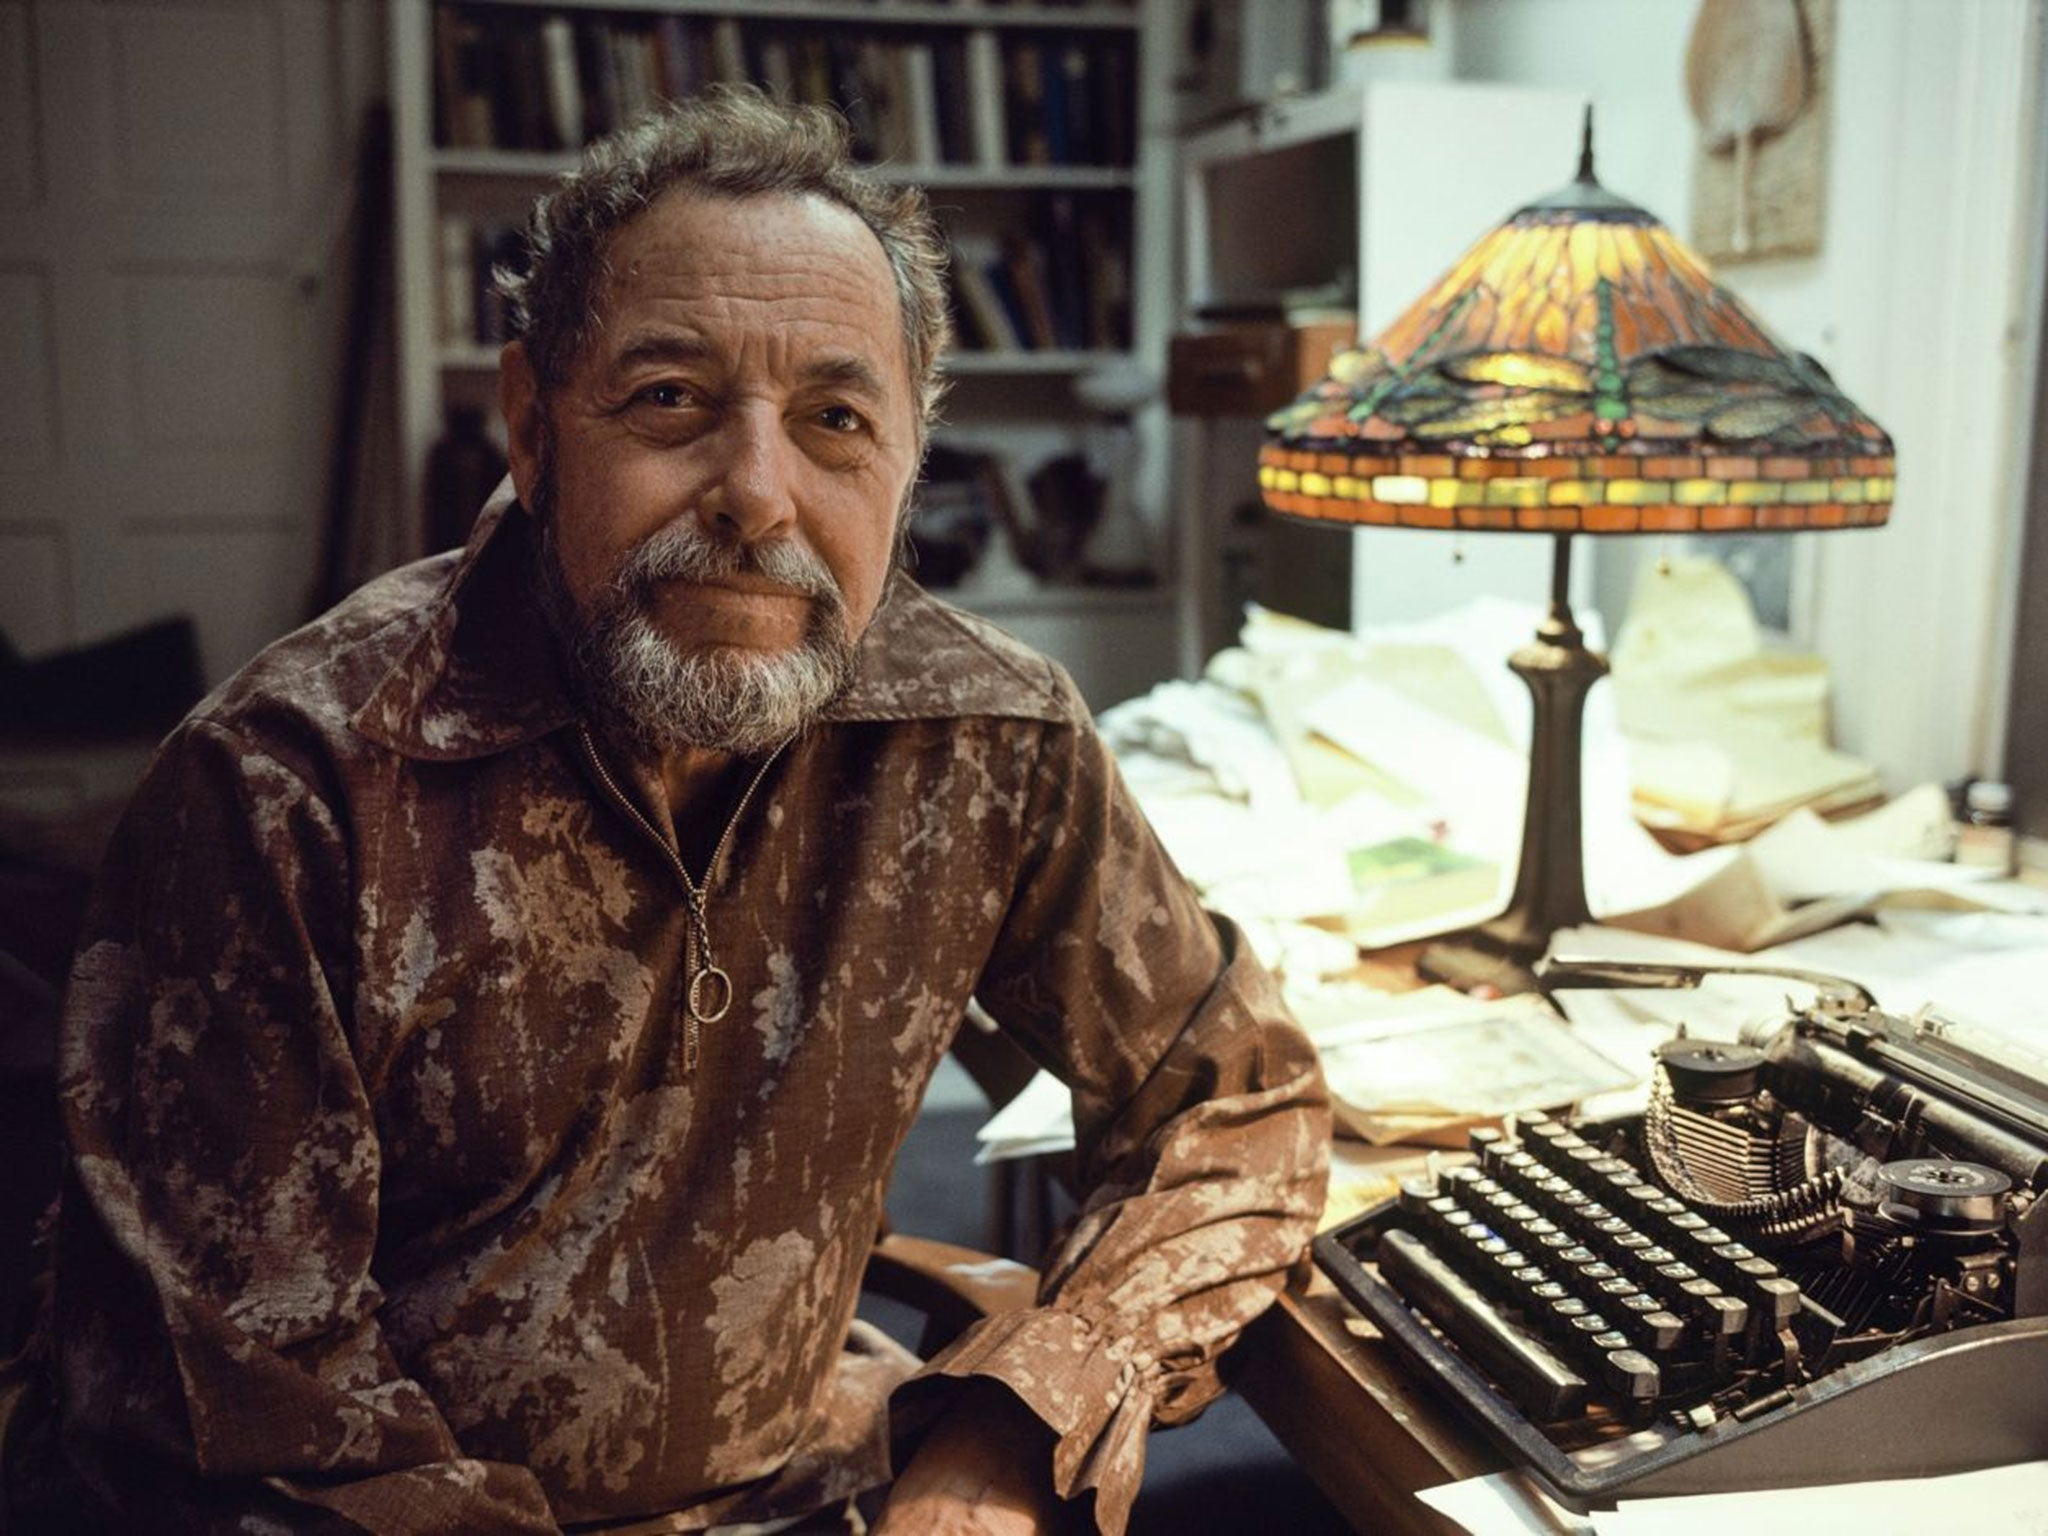 tennessee williams essay Tennessee williams essays tennessee williams wikipedia, tennessee williams he also wrote short stories, poetry, essays and a volume of memoirs williams, tennessee.